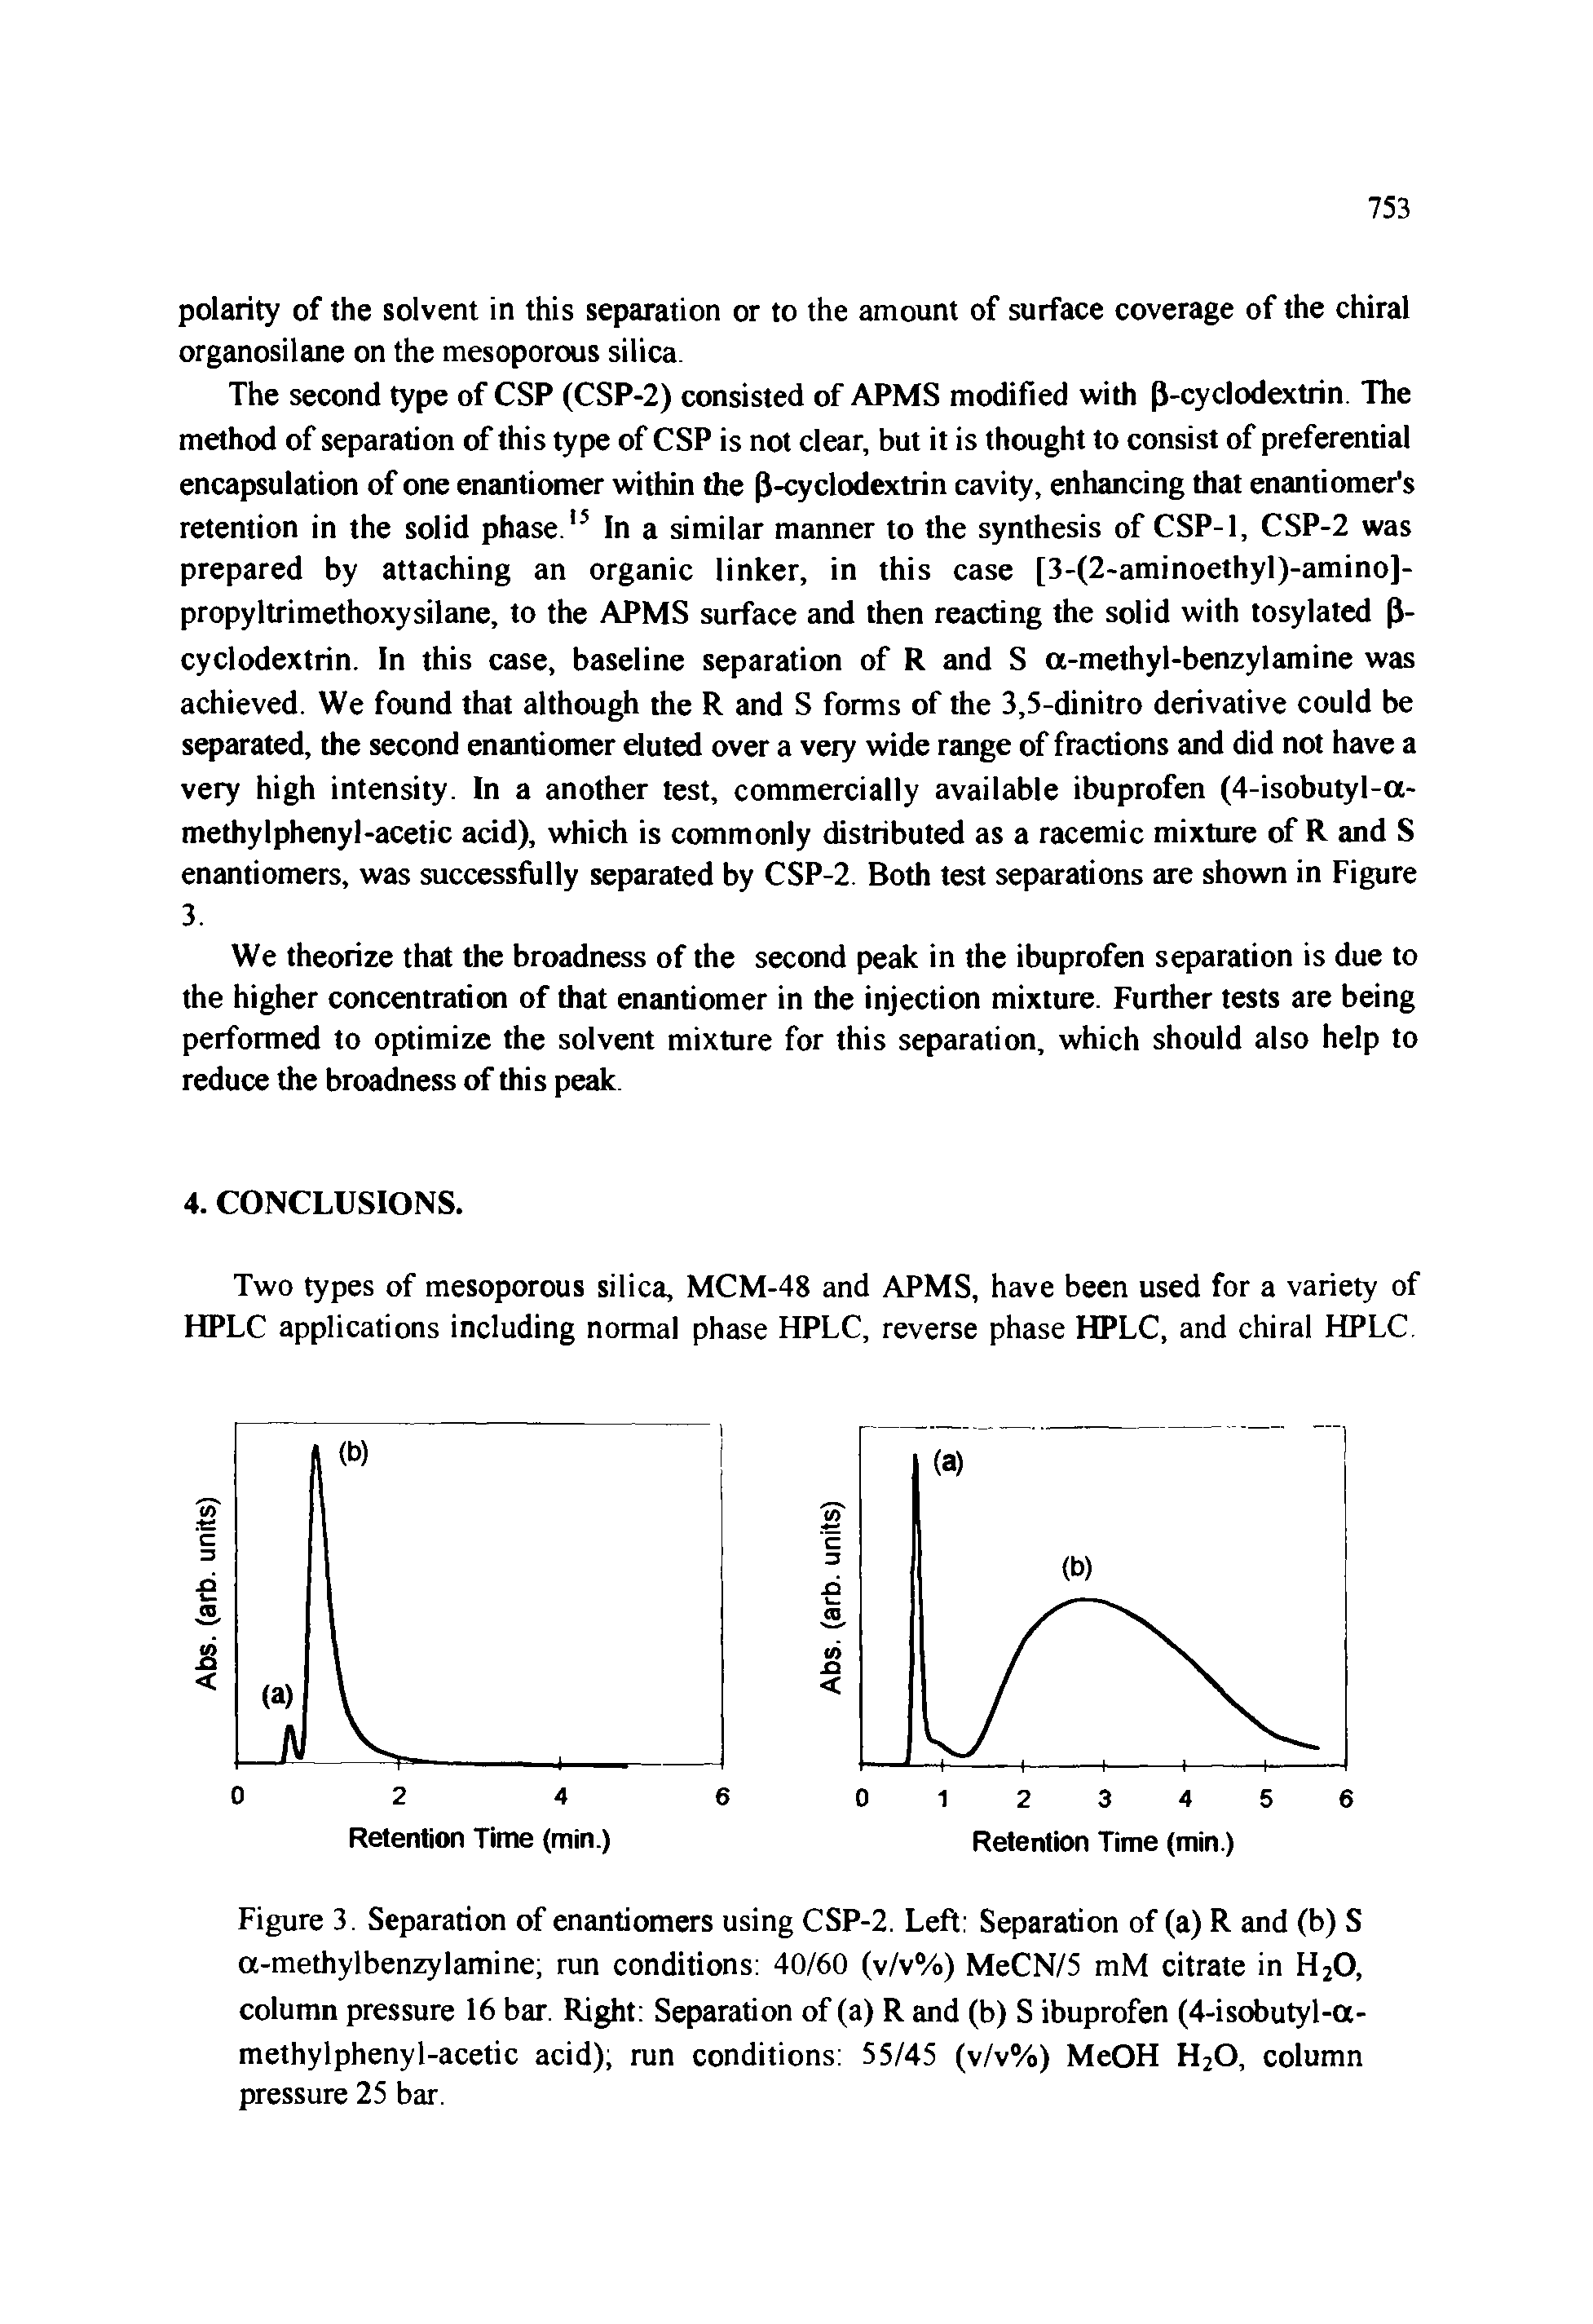 "Figure 3. Separation of <a href=""/info/enantiomers_csp_using"">enantiomers using</a> CSP-2. Left Separation of (a) R and (b) S a-methylbenzylamine run conditions 40/60 (v/v%) MeCN/5 mM citrate in H20, <a href=""/info/columns_pressure_and"">column pressure</a> 16 bar. Right Separation of (a) R and (b) S ibuprofen (4-isobutyl-a-<a href=""/info/p_methylphenyl_acetate"">methylphenyl-acetic</a> acid) run conditions 55/45 (v/v%) MeOH H20, column pressure 25 bar."